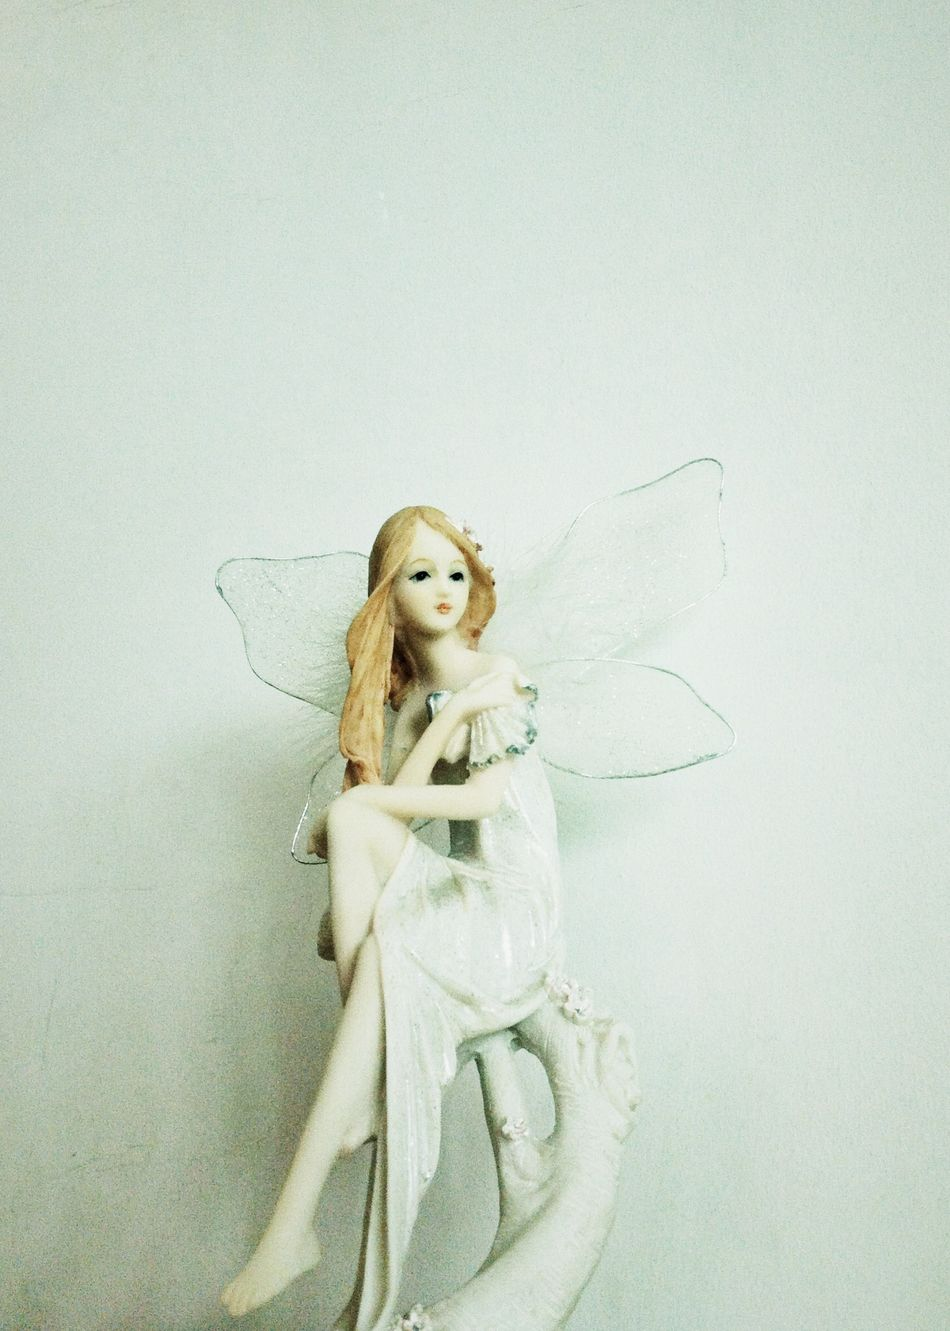 Another fairy with wings. Fairy Toy White